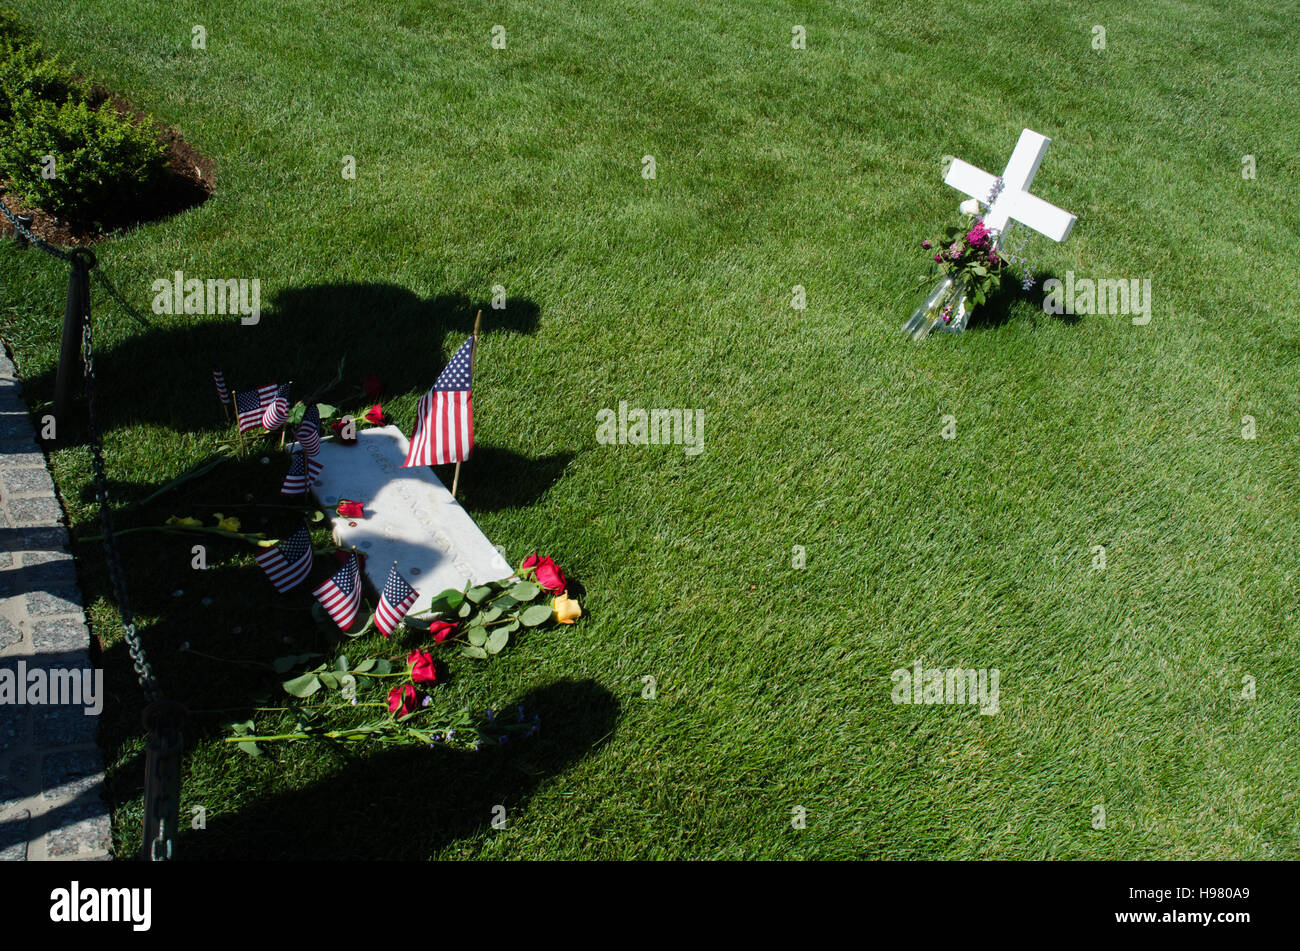 Grave of Robert F Kennedy at Arlington National Cemetery near Washington, DC. - Stock Image